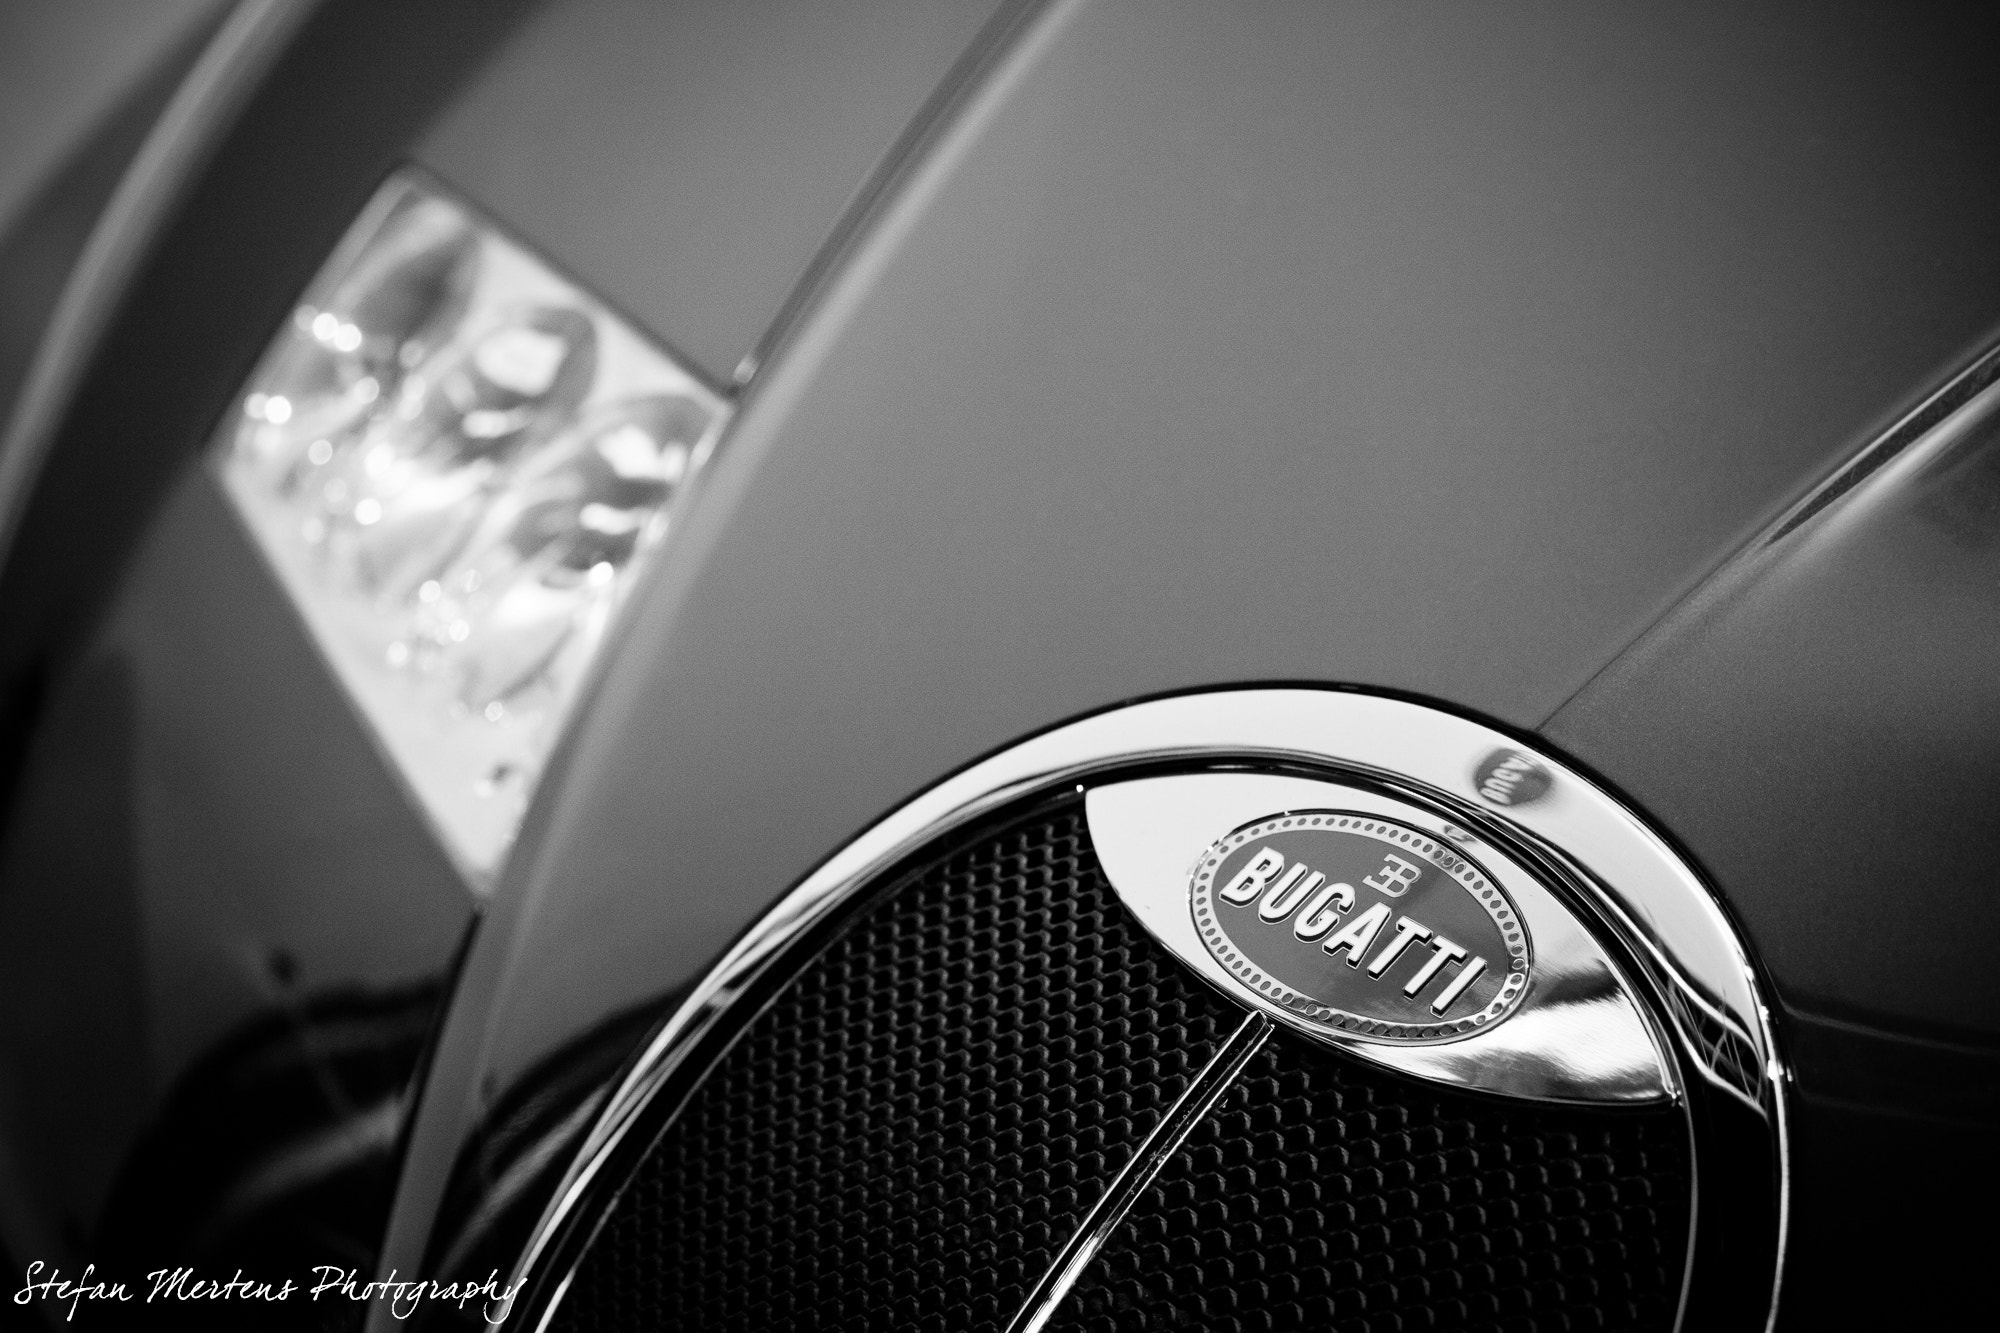 Photograph Bugatti's Passion by Stefan Mertens on 500px